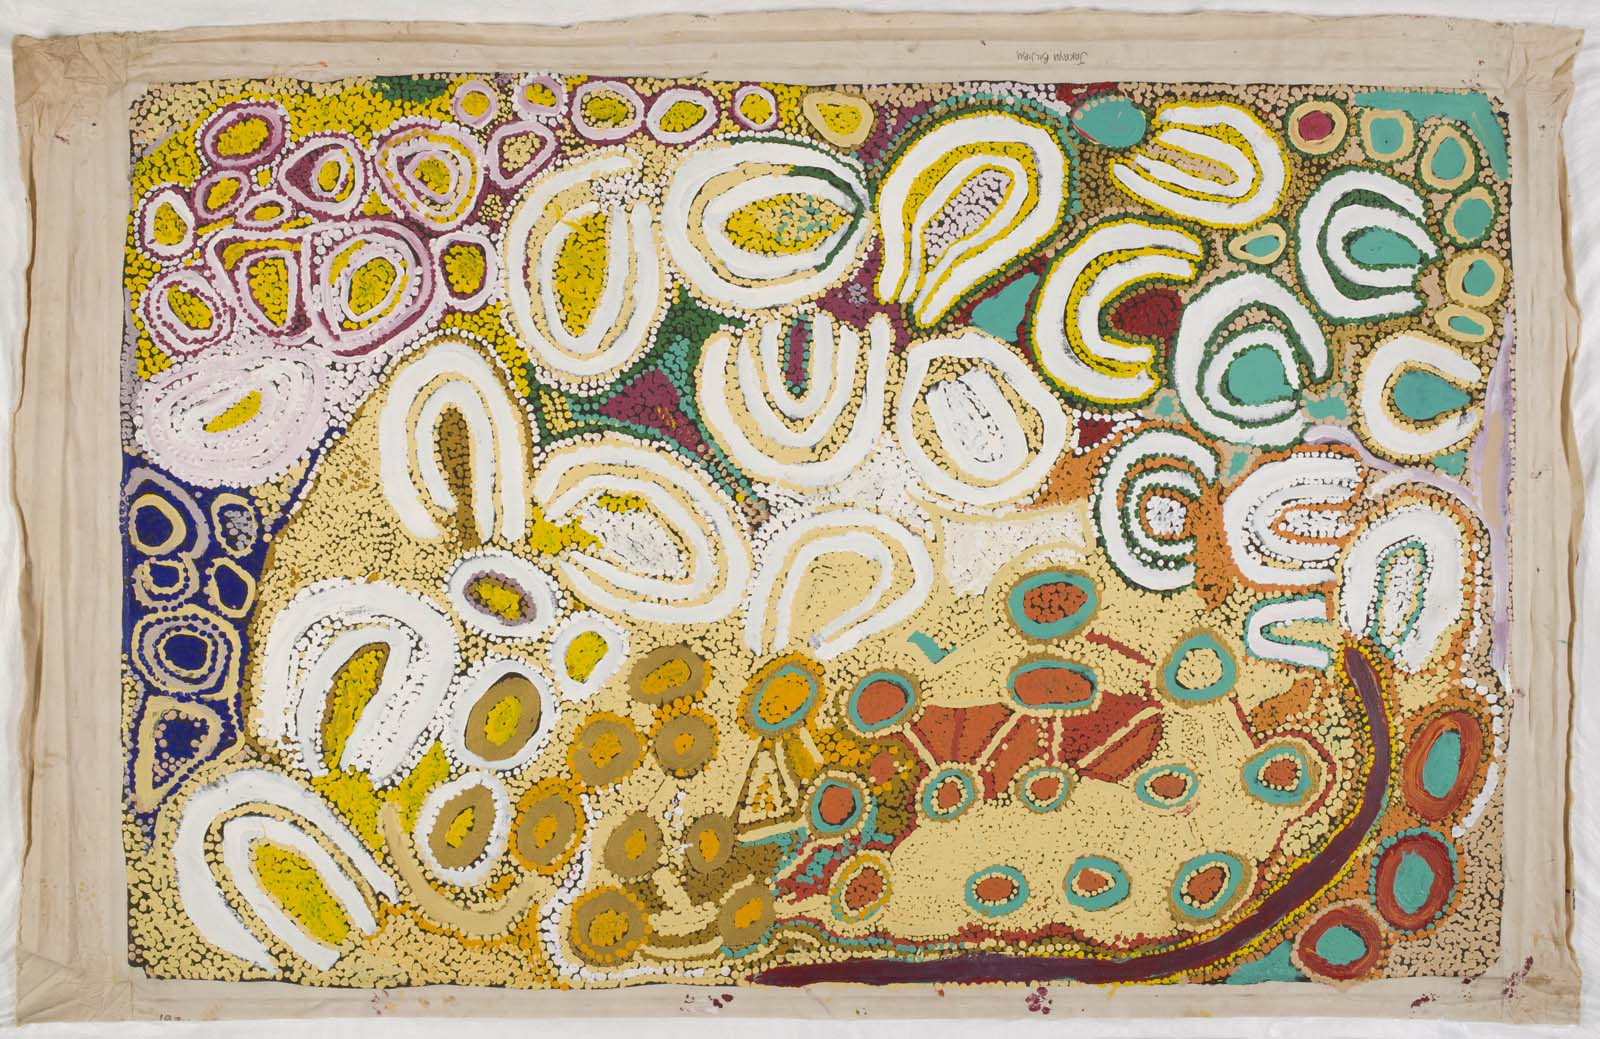 abstract panting with swirls and repeating circular patterns in a yellow palette